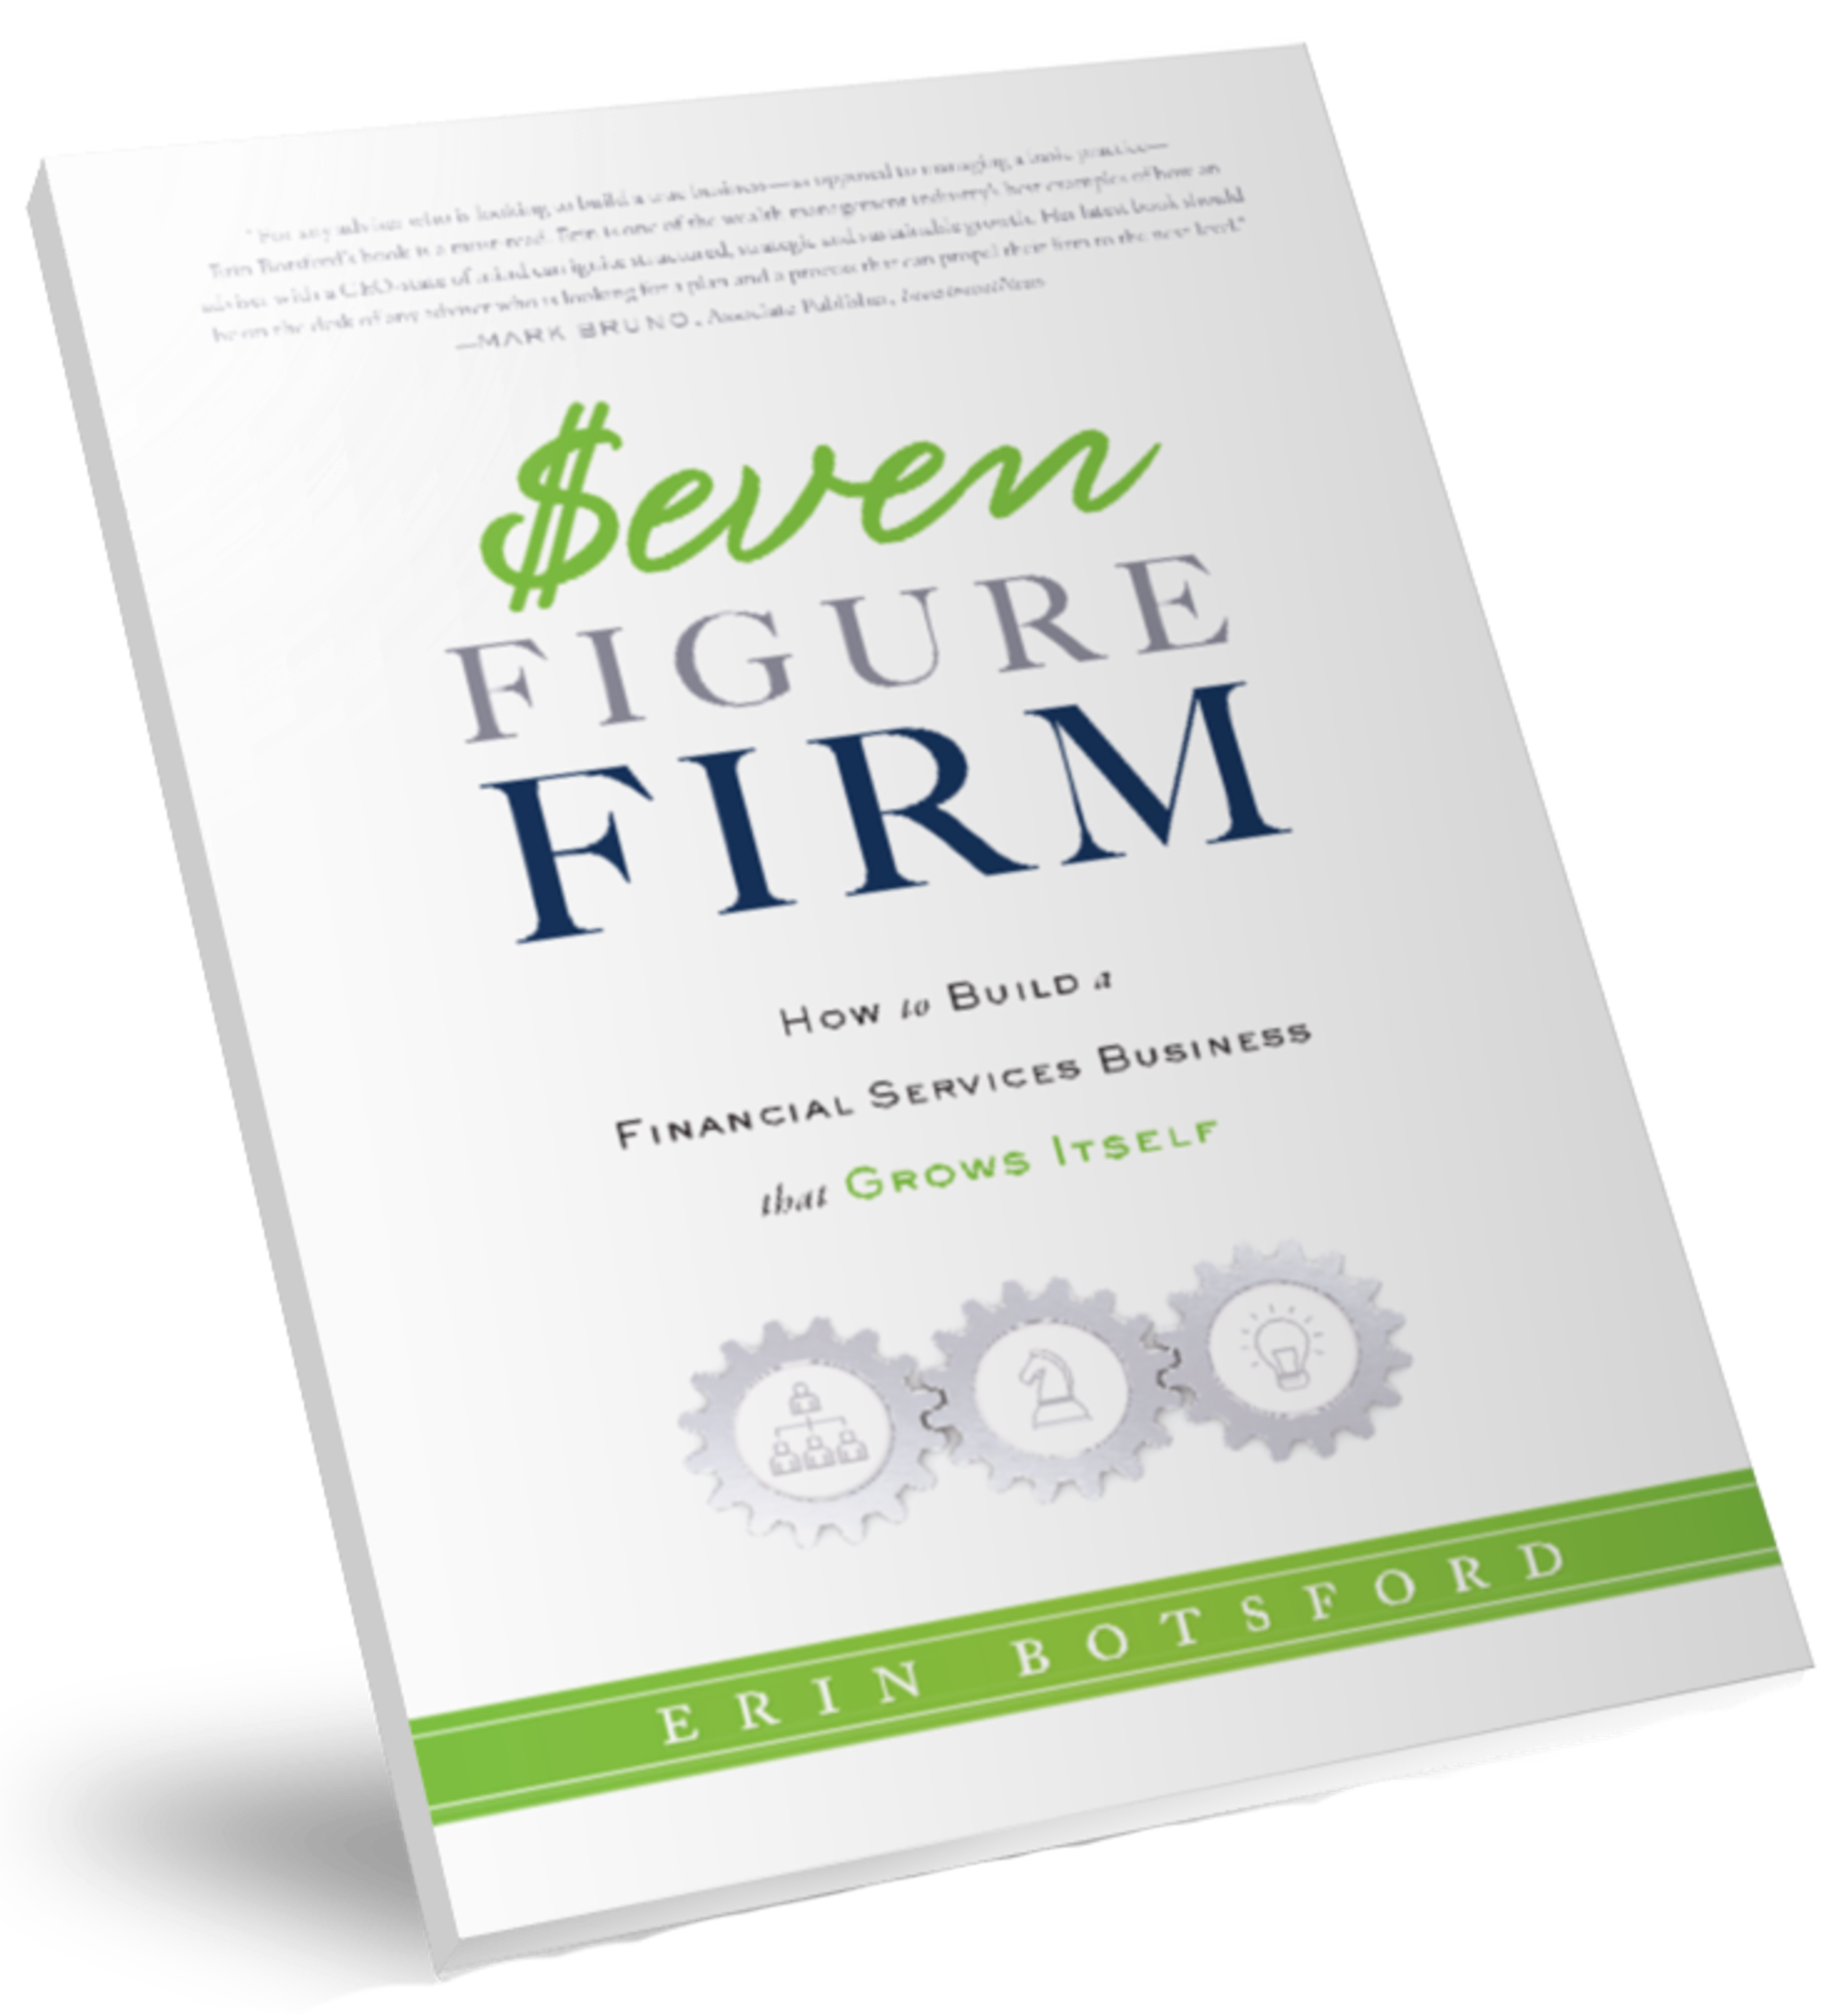 Seven Figure Firm Erin Botsford Financial Advisor Training